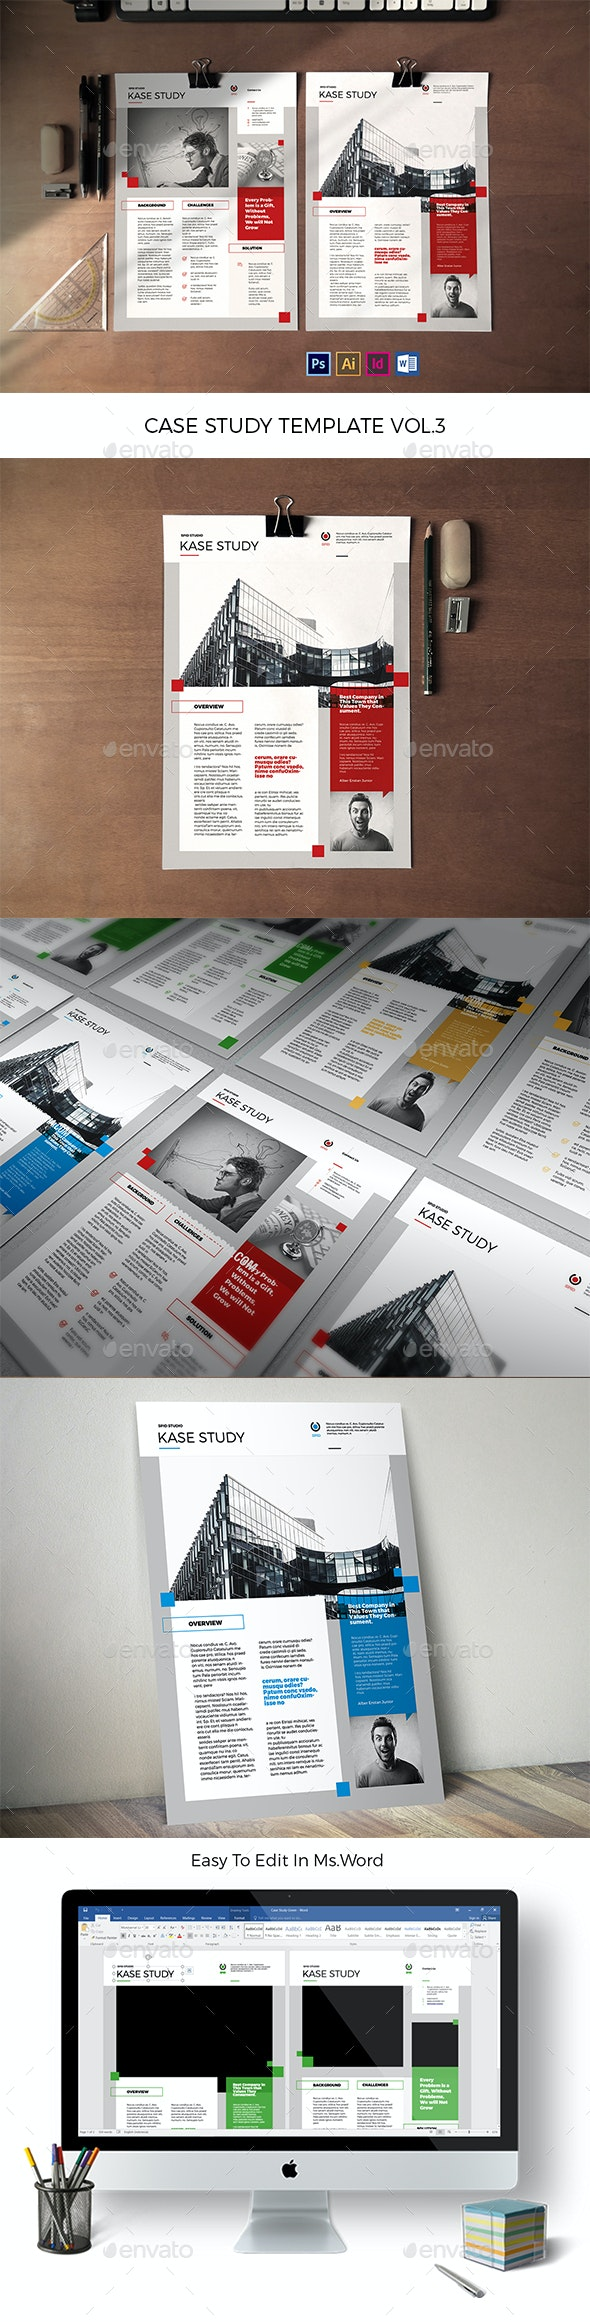 CaseStudy Template Vol.3 - Informational Brochures